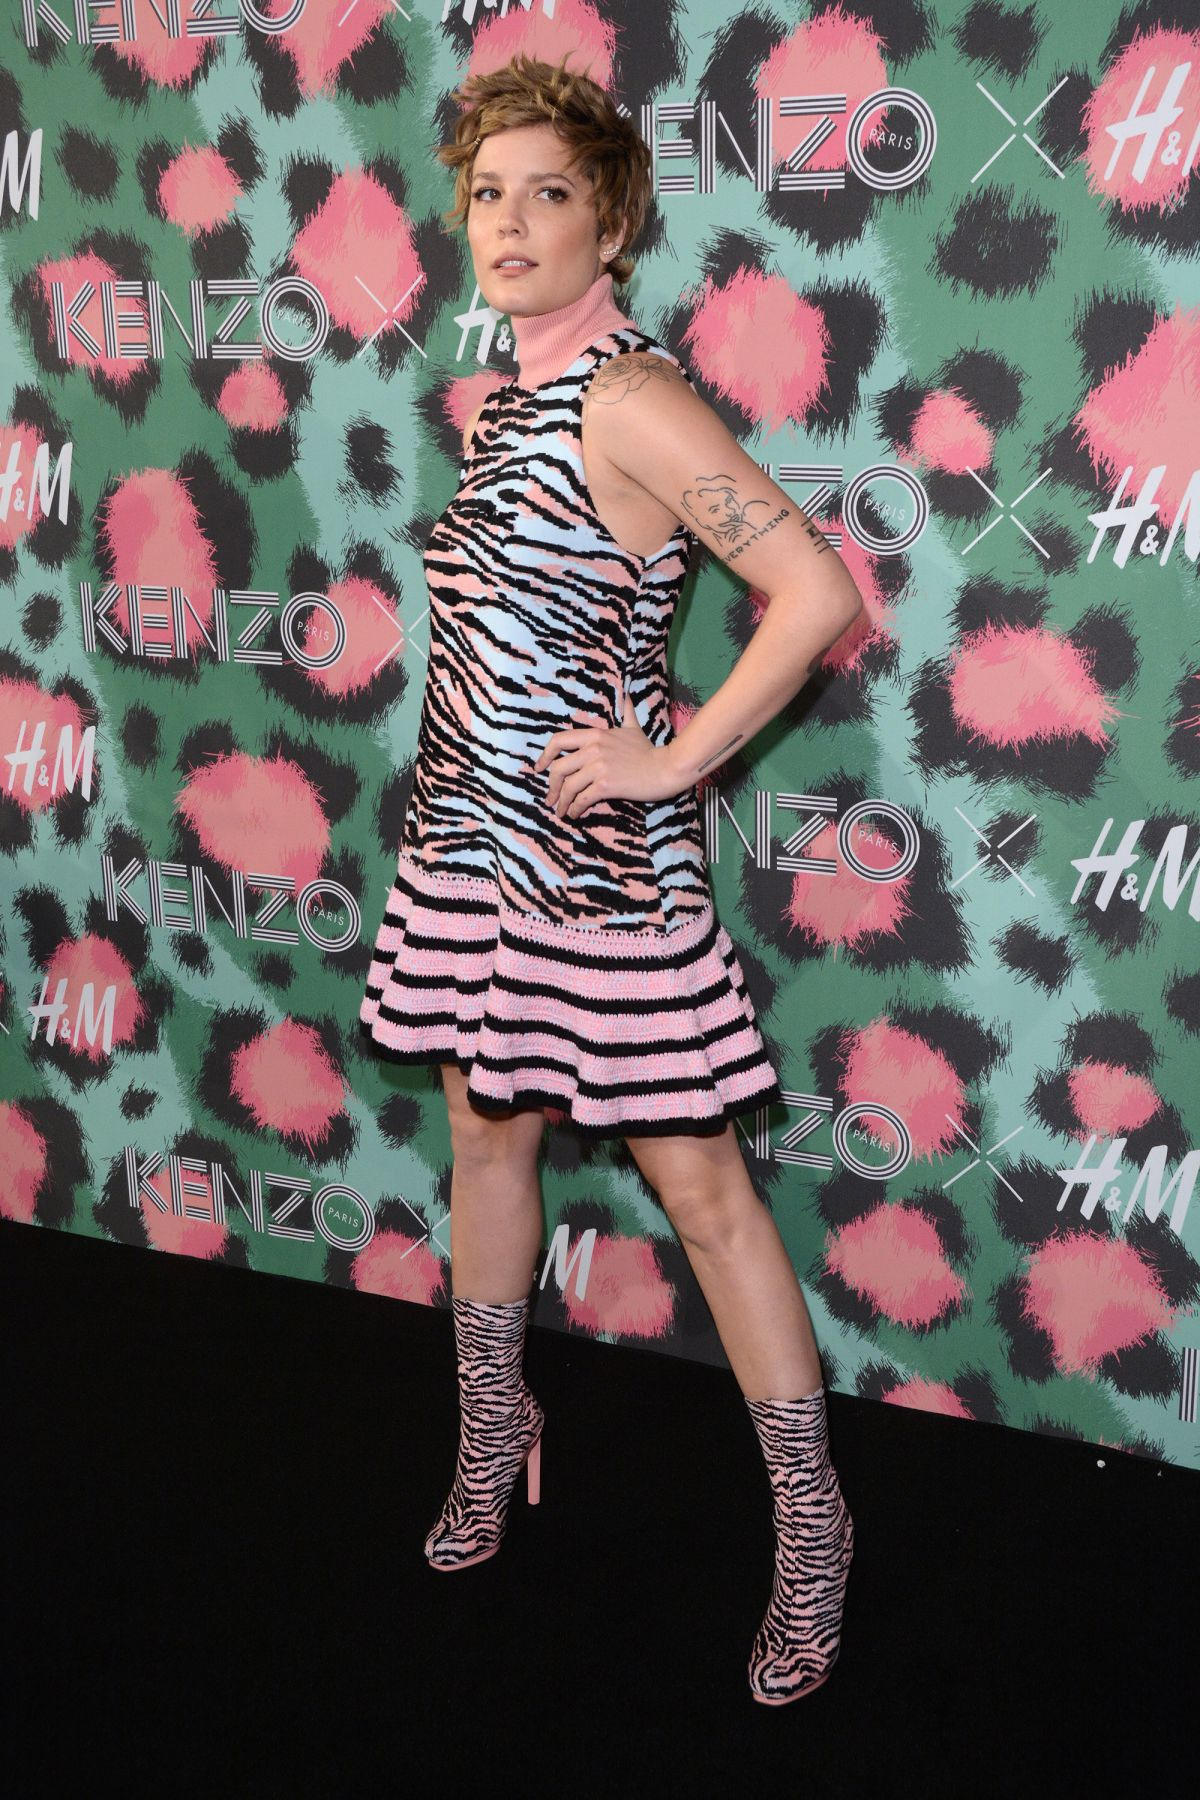 aab38fea0565 halsey-at-kenzo-x-h-m-launch-party-in-new-york-10-19-2016_9 - HawtCelebs